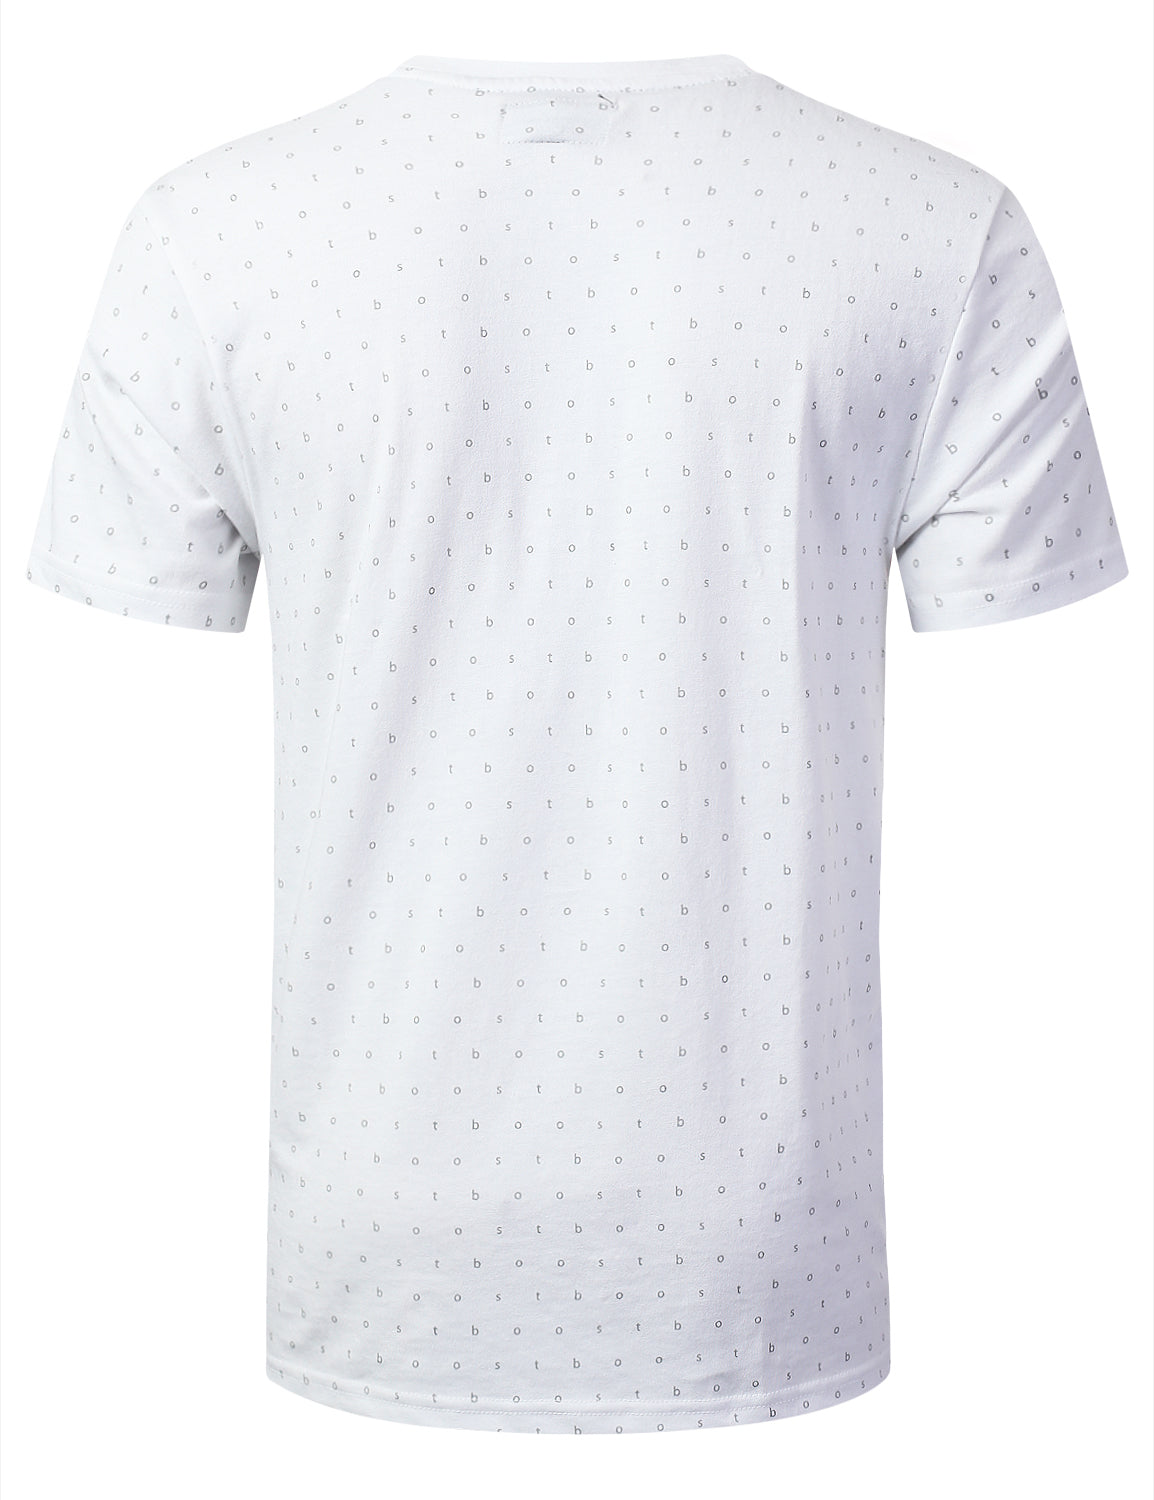 WHITE BOOST LIFE Pattern Print Graphic T-shirt - URBANCREWS